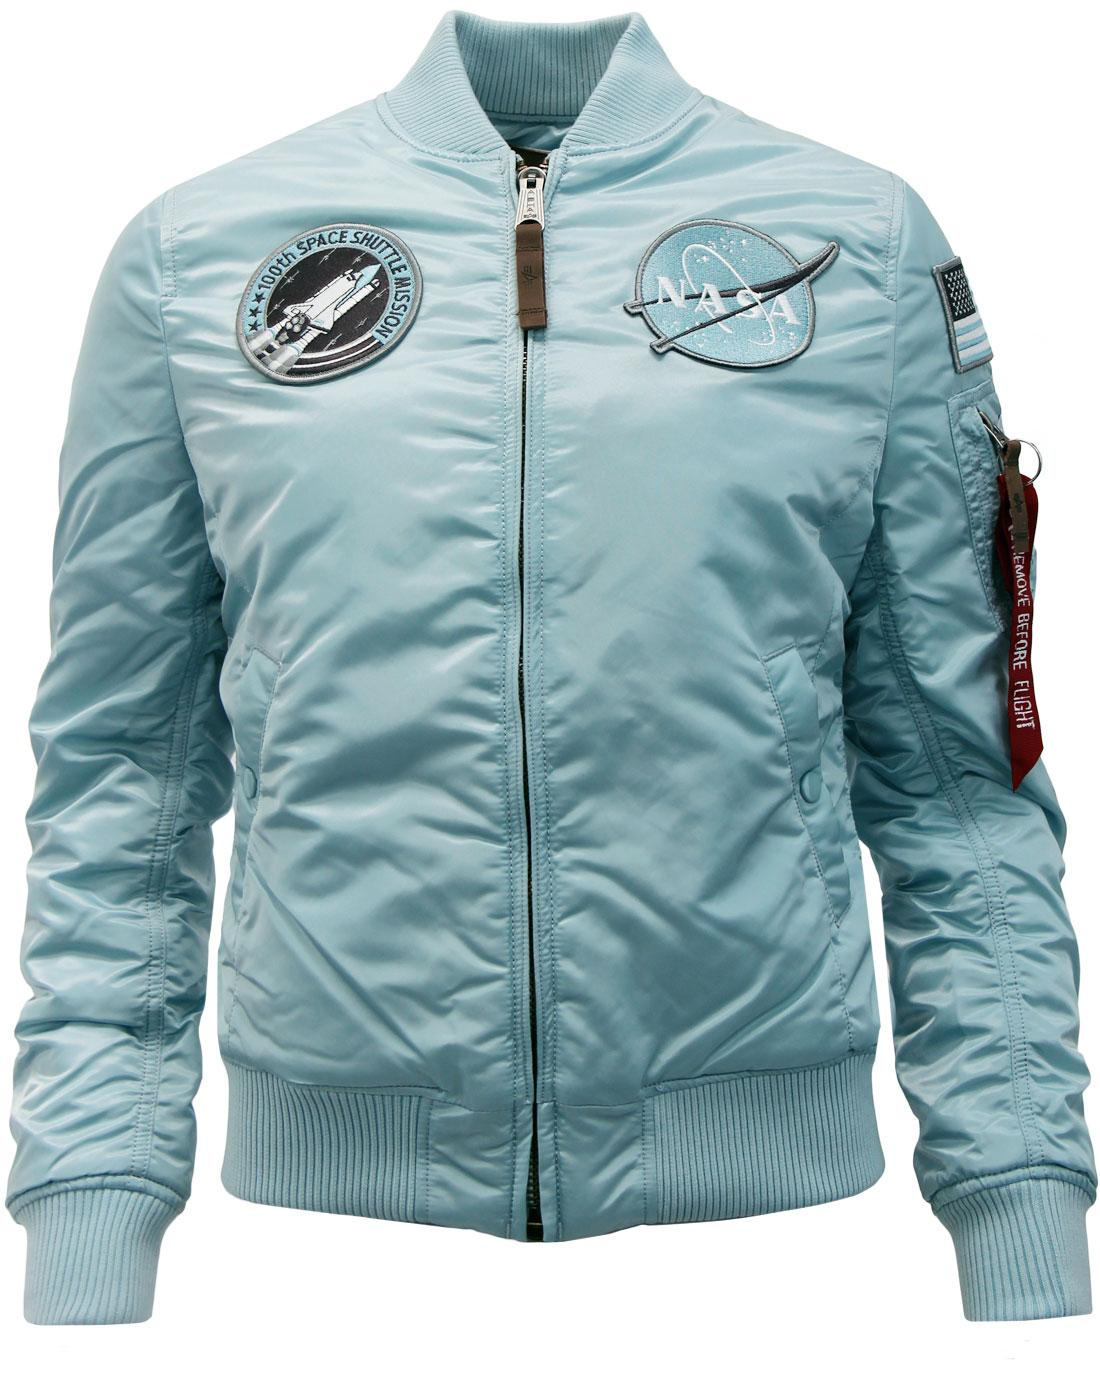 MA1 VF NASA ALPHA INDUSTRIES Women's Bomber Jacket